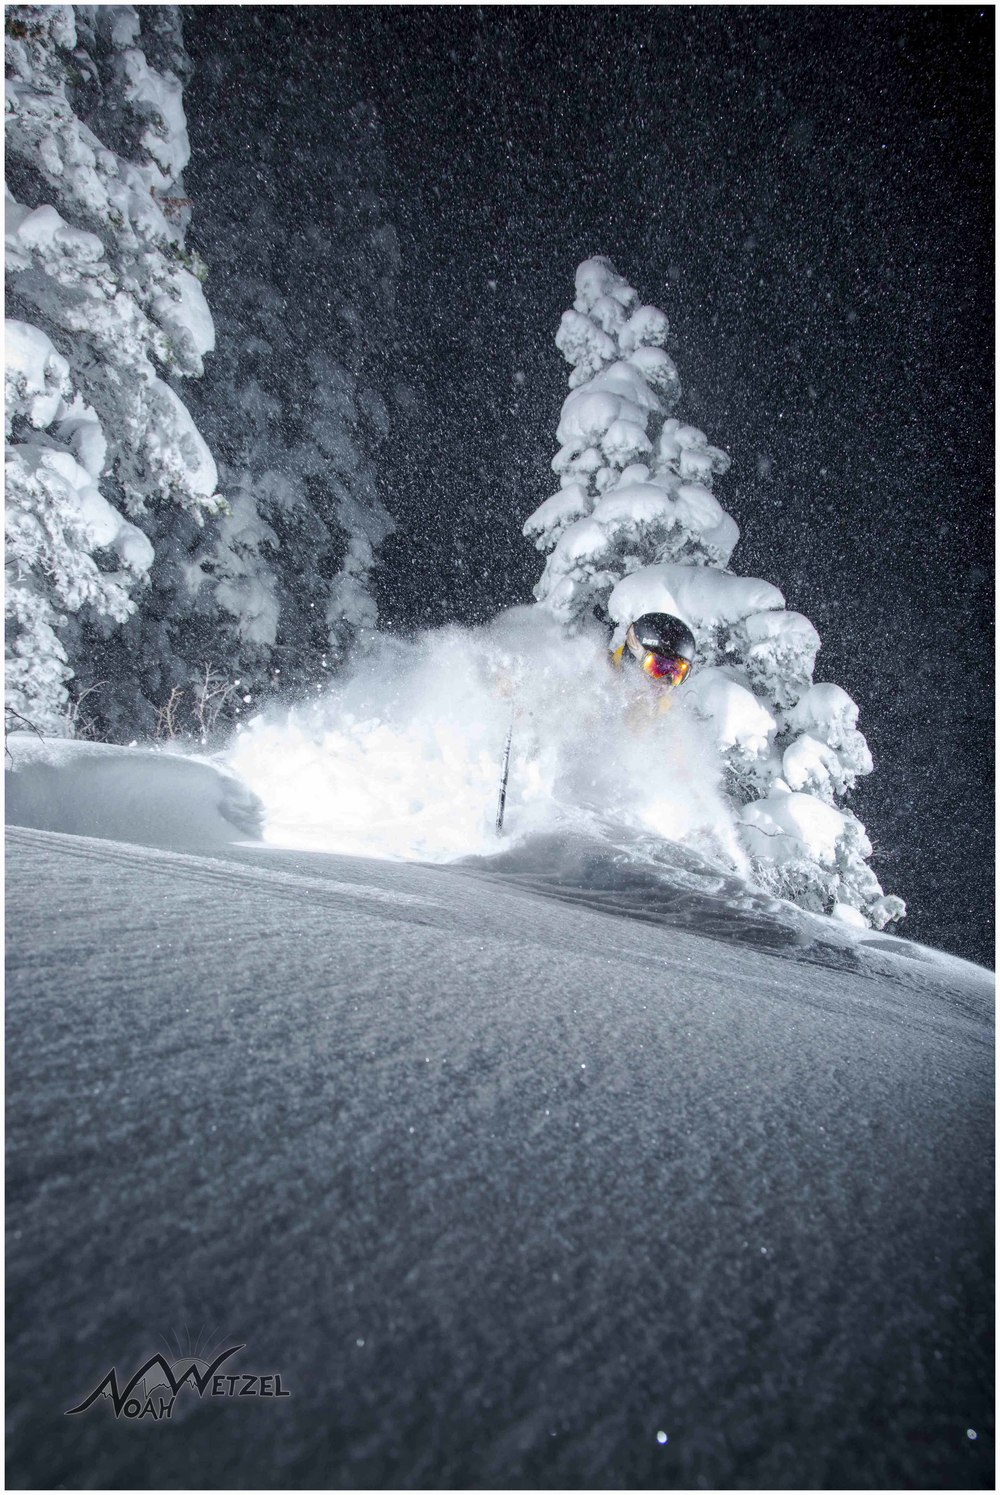 Chris Brule blows up a turn at night in Westward Ho at Alta Ski Area, Utah.